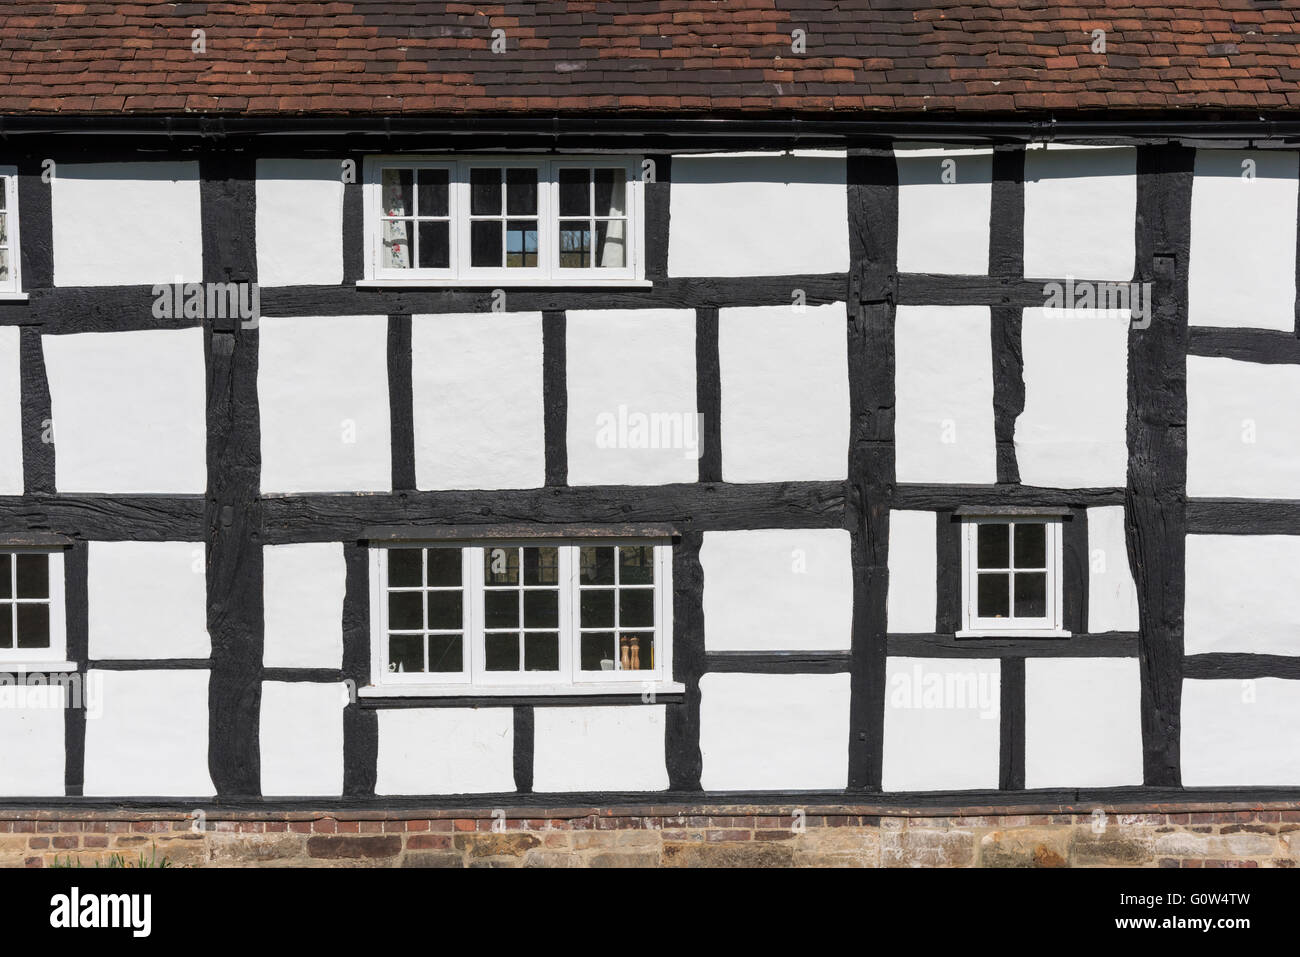 Medieval Timber Framed House Medieval Stock Photos & Medieval Timber ...